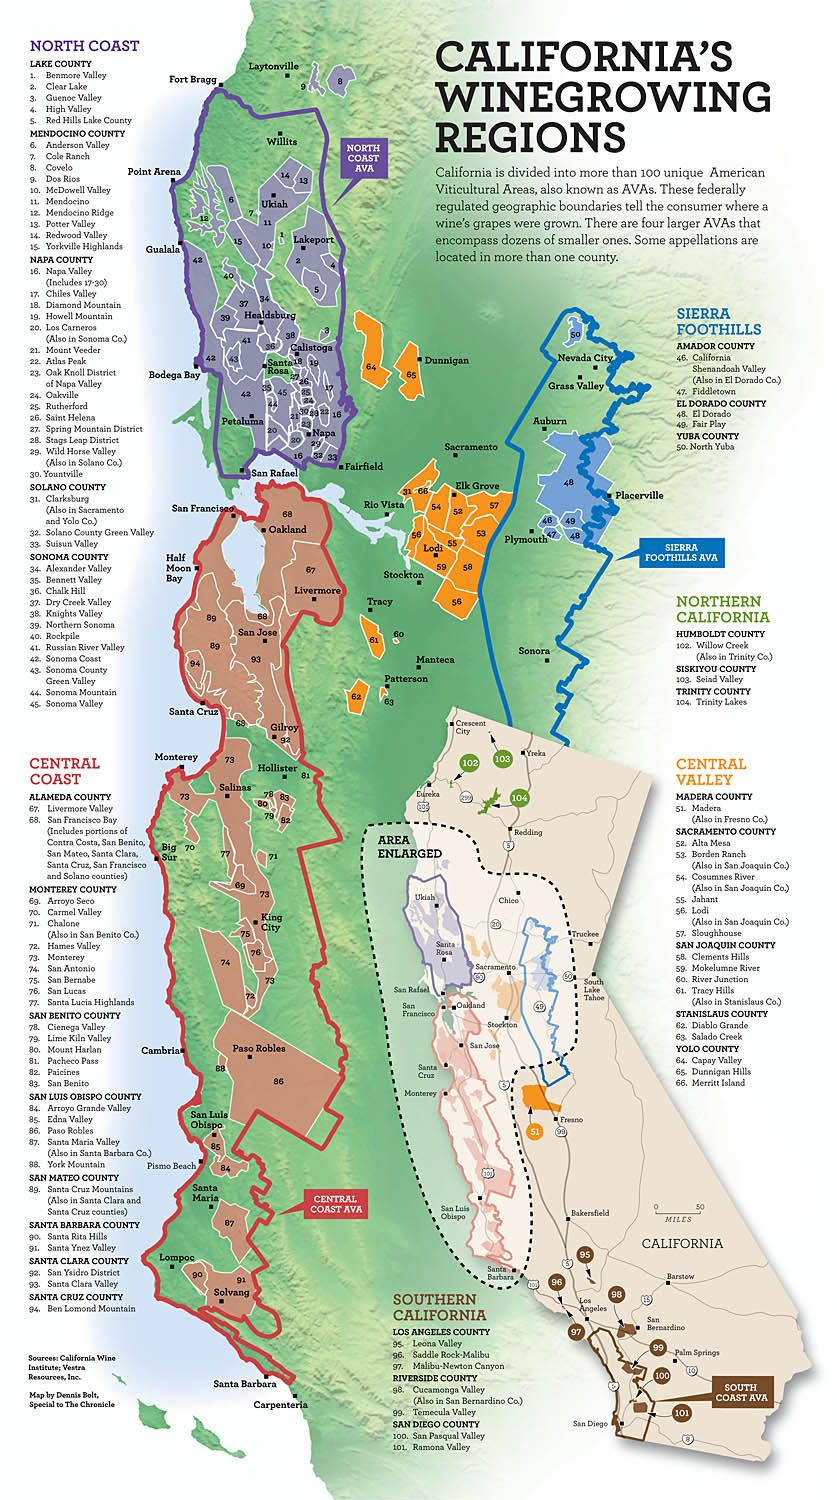 California's Wine Growing Regions | Cartographie | Pinterest | Wine - Map Of California Wine Appellations